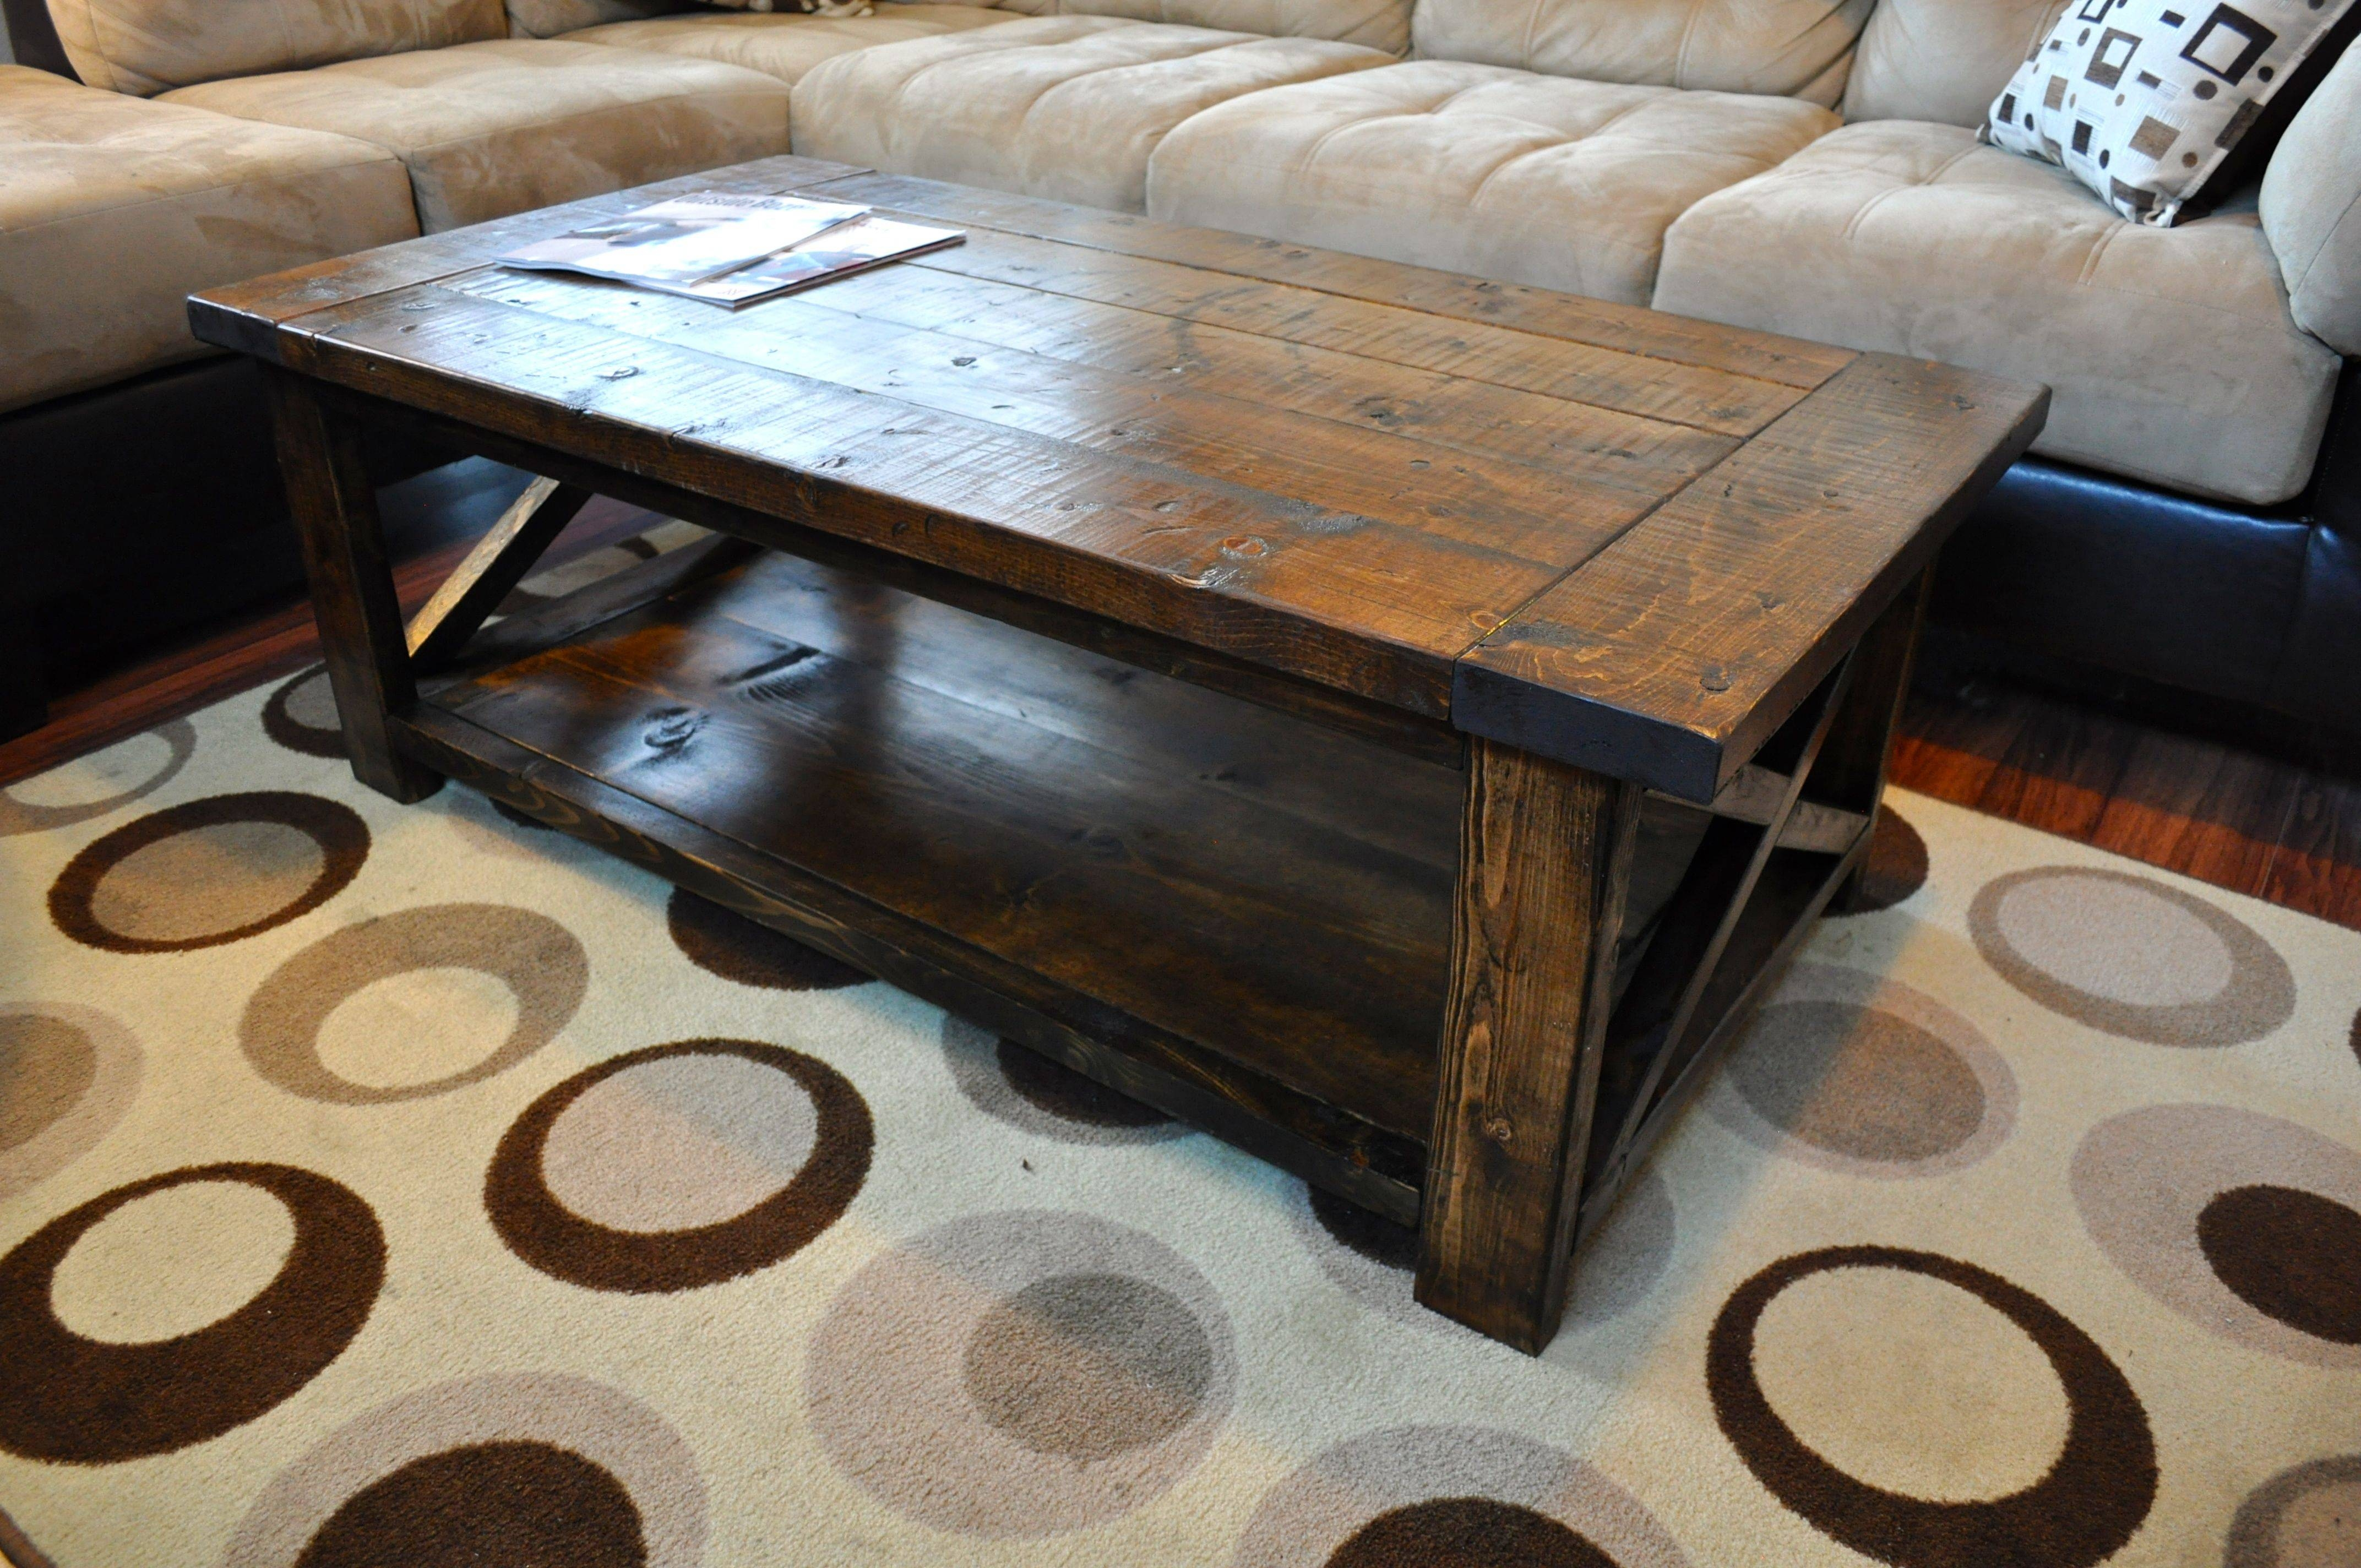 Simply Quirky With Rustic X Coffee Table | Coffe Table Gallery throughout Quirky Coffee Tables (Image 23 of 30)